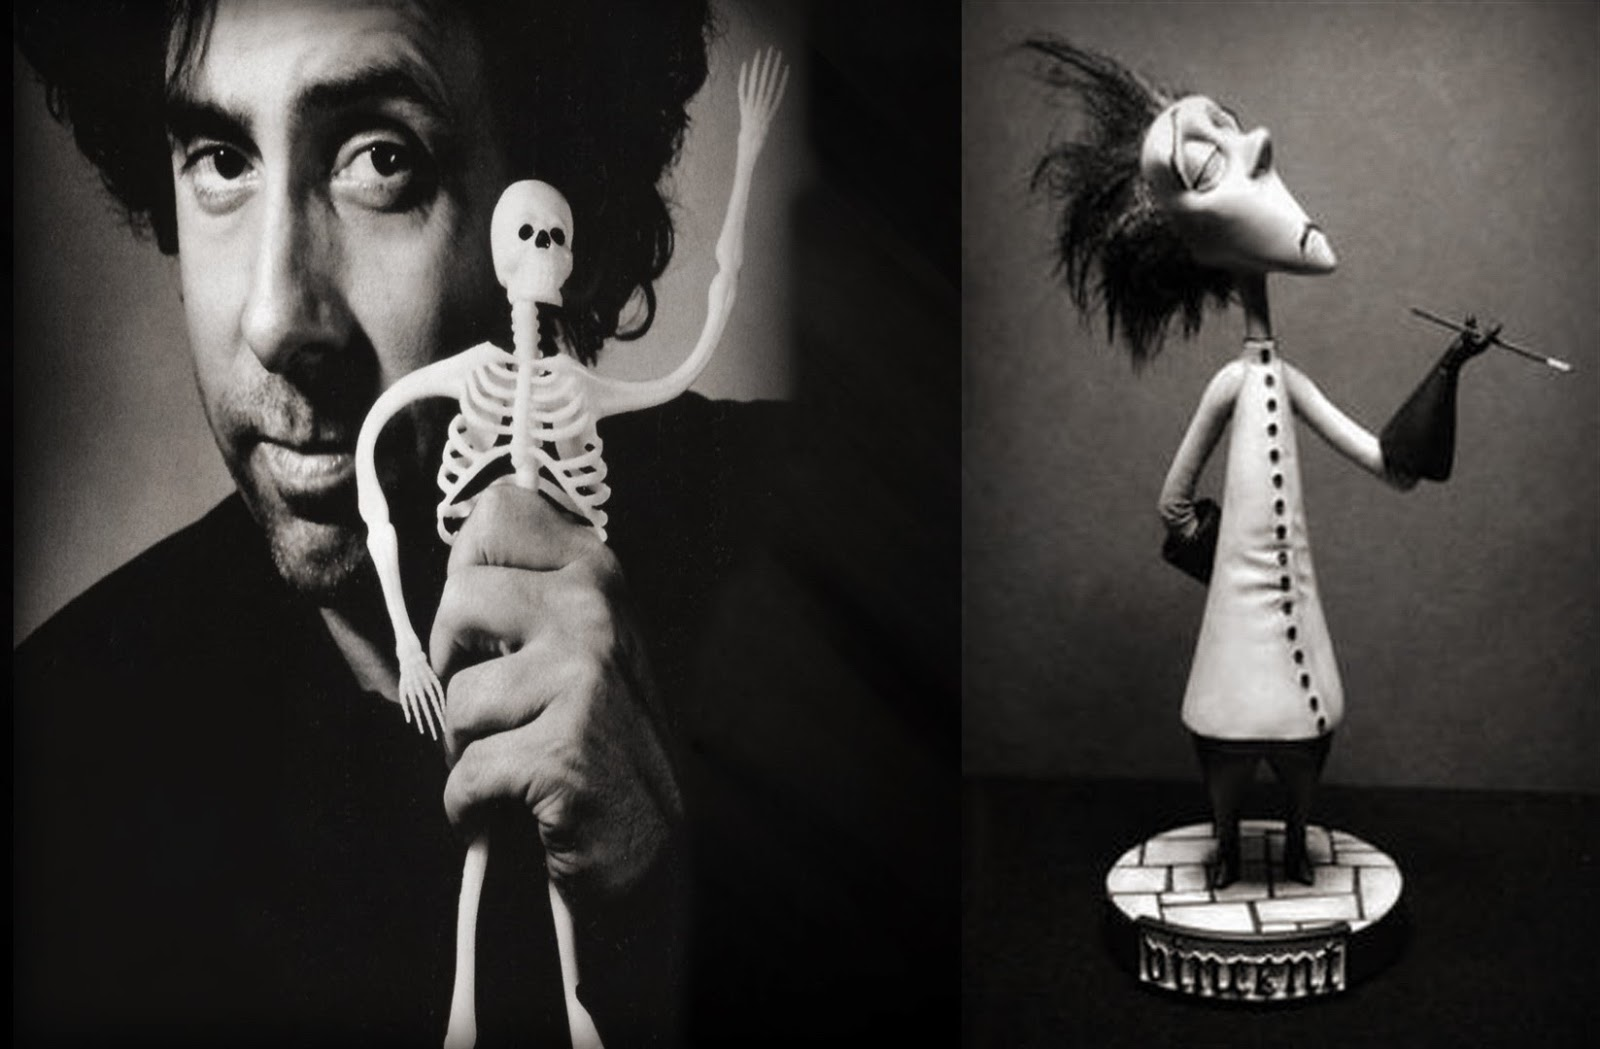 vincent tim burton Find great deals on ebay for tim burton vincent shop with confidence.